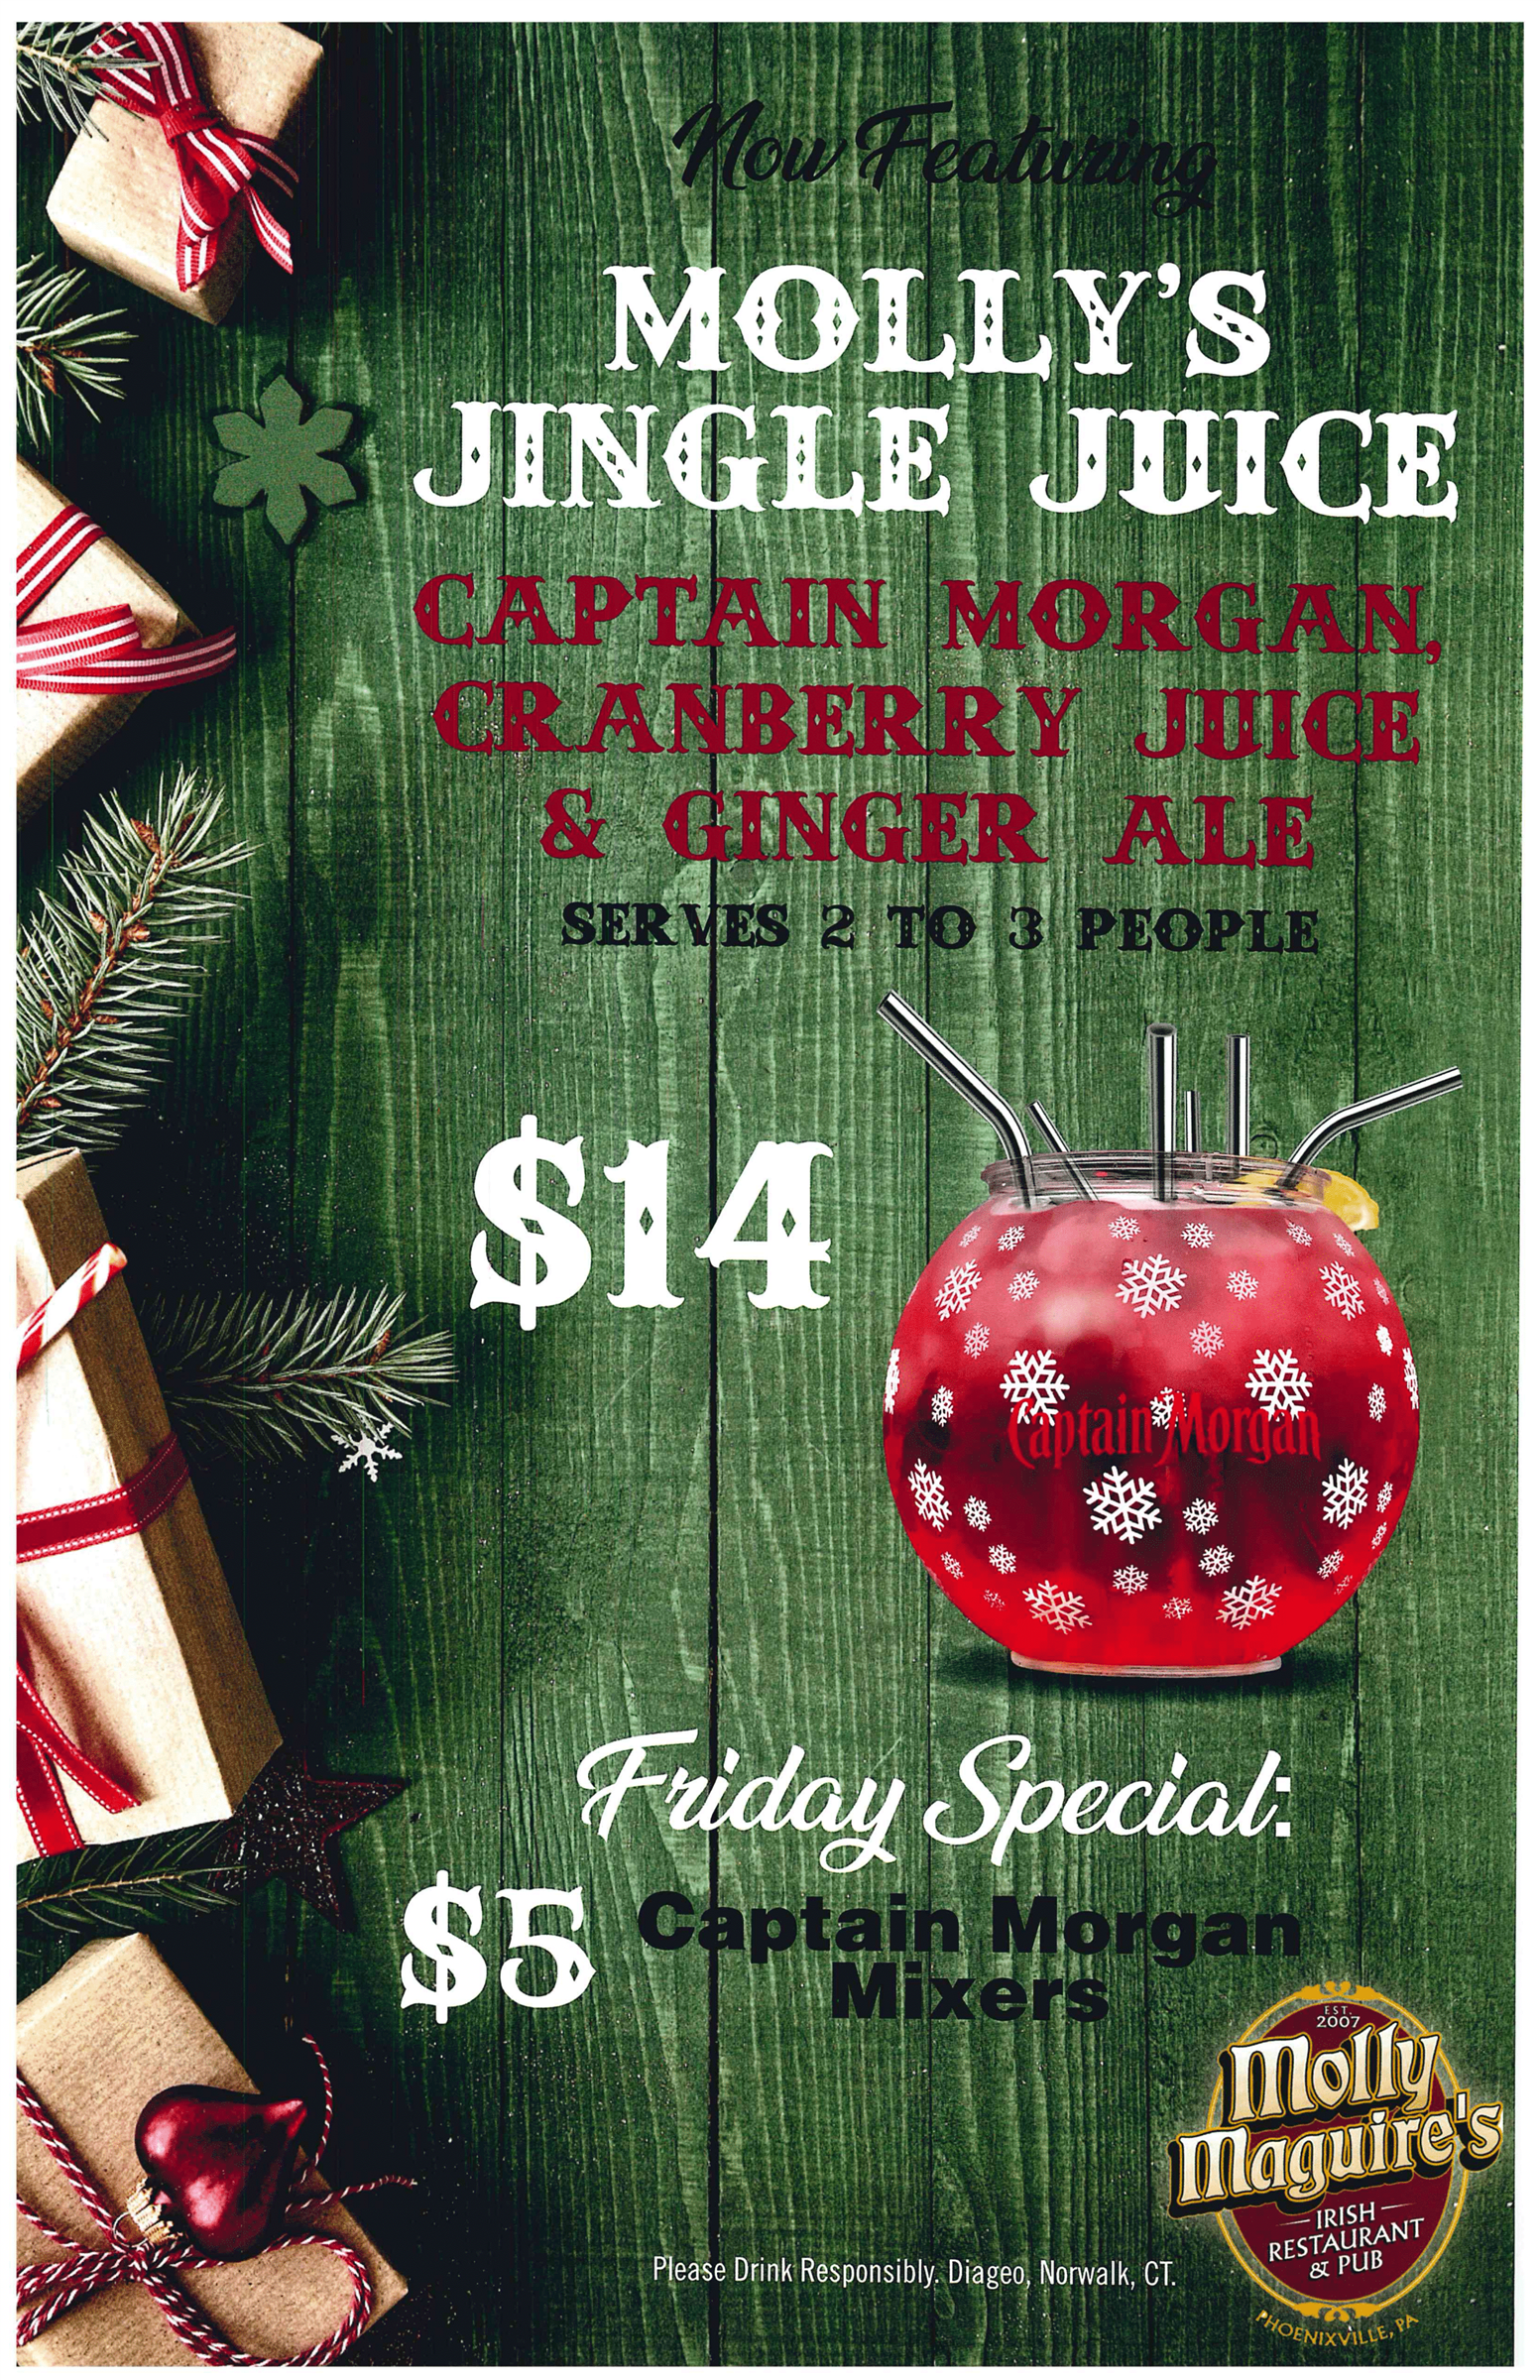 Molly's Jingle juice. captain Morgan, Cranberry Juice & ginger Ale. Serves 2 to 3 people $14